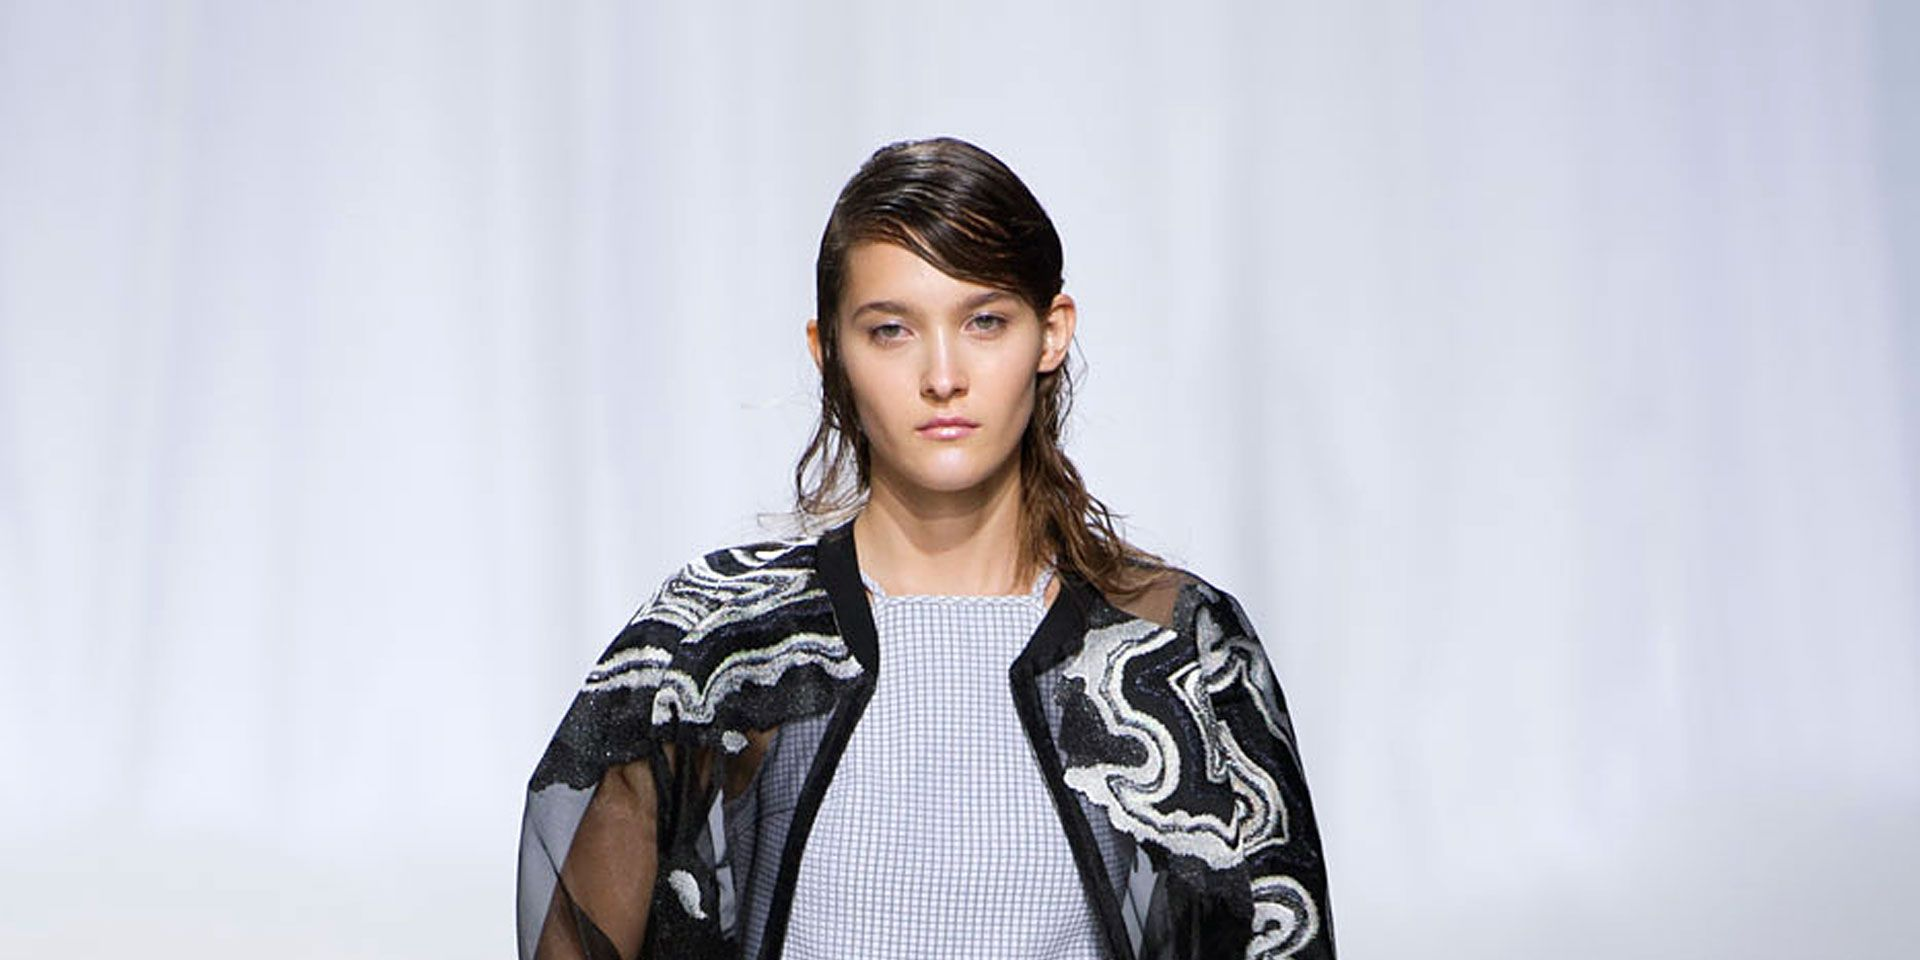 The 20 Best Looks from New York Fashion Week S/S 2014